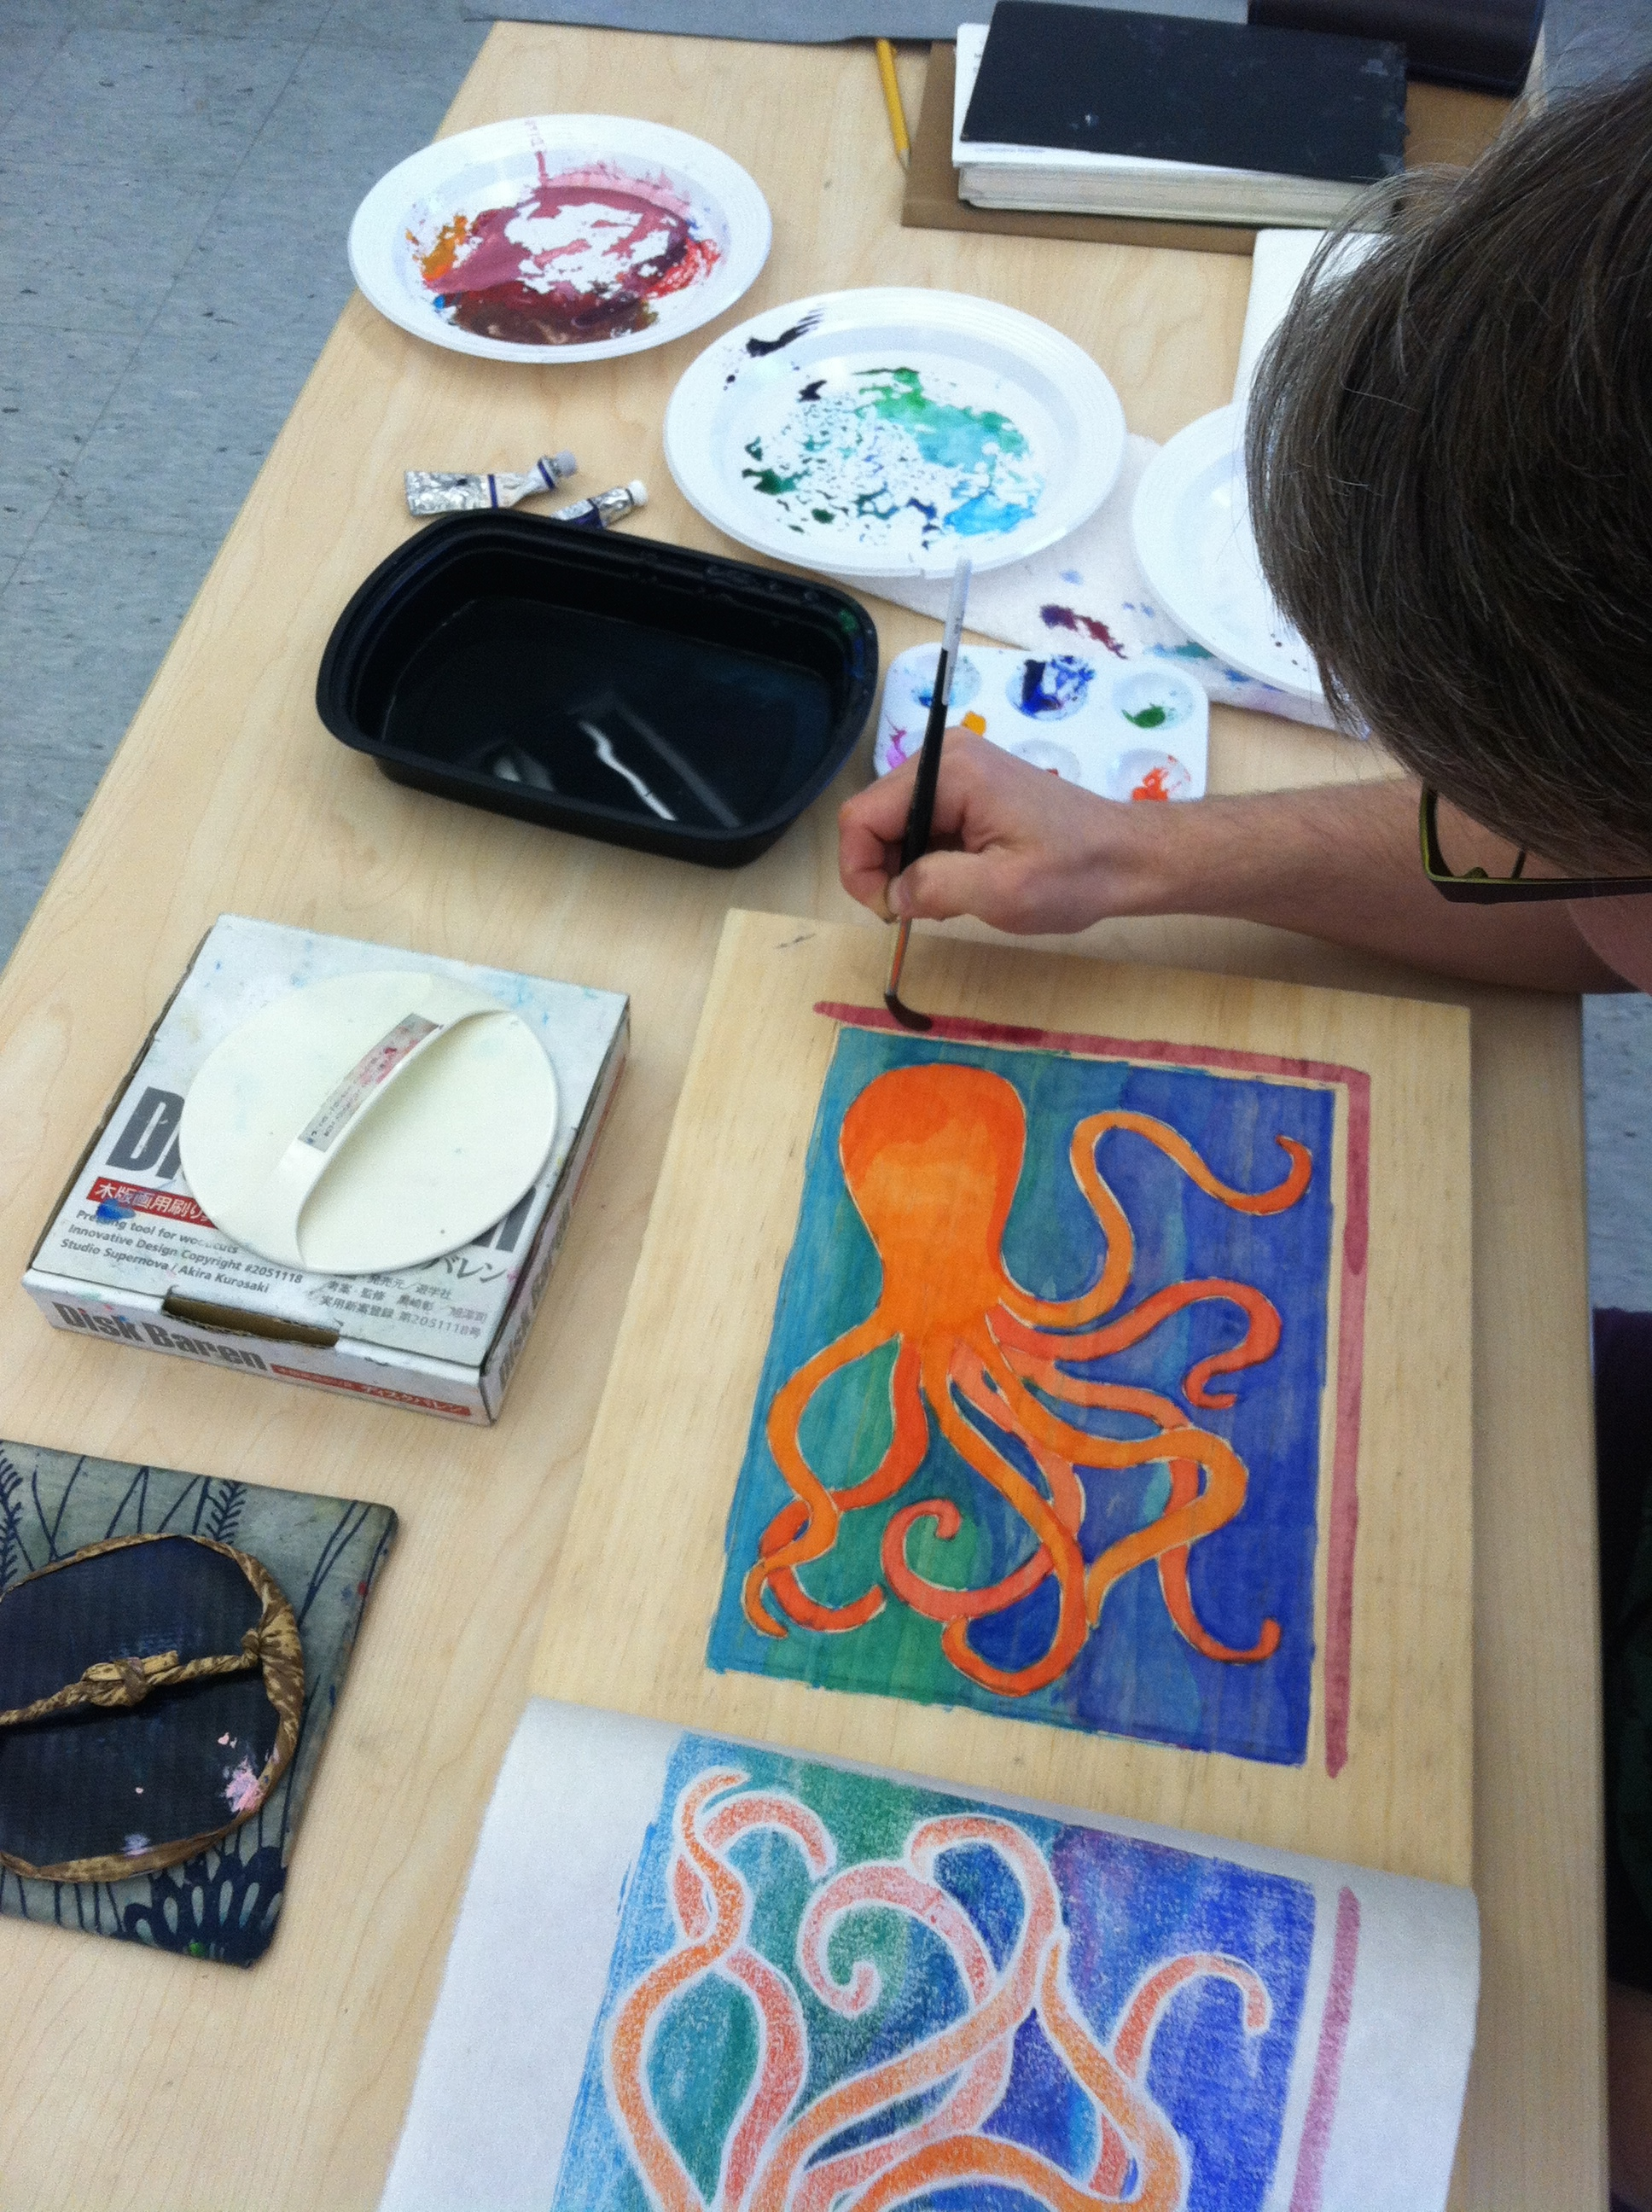 Katy's octopus with painterly watercolor background added.